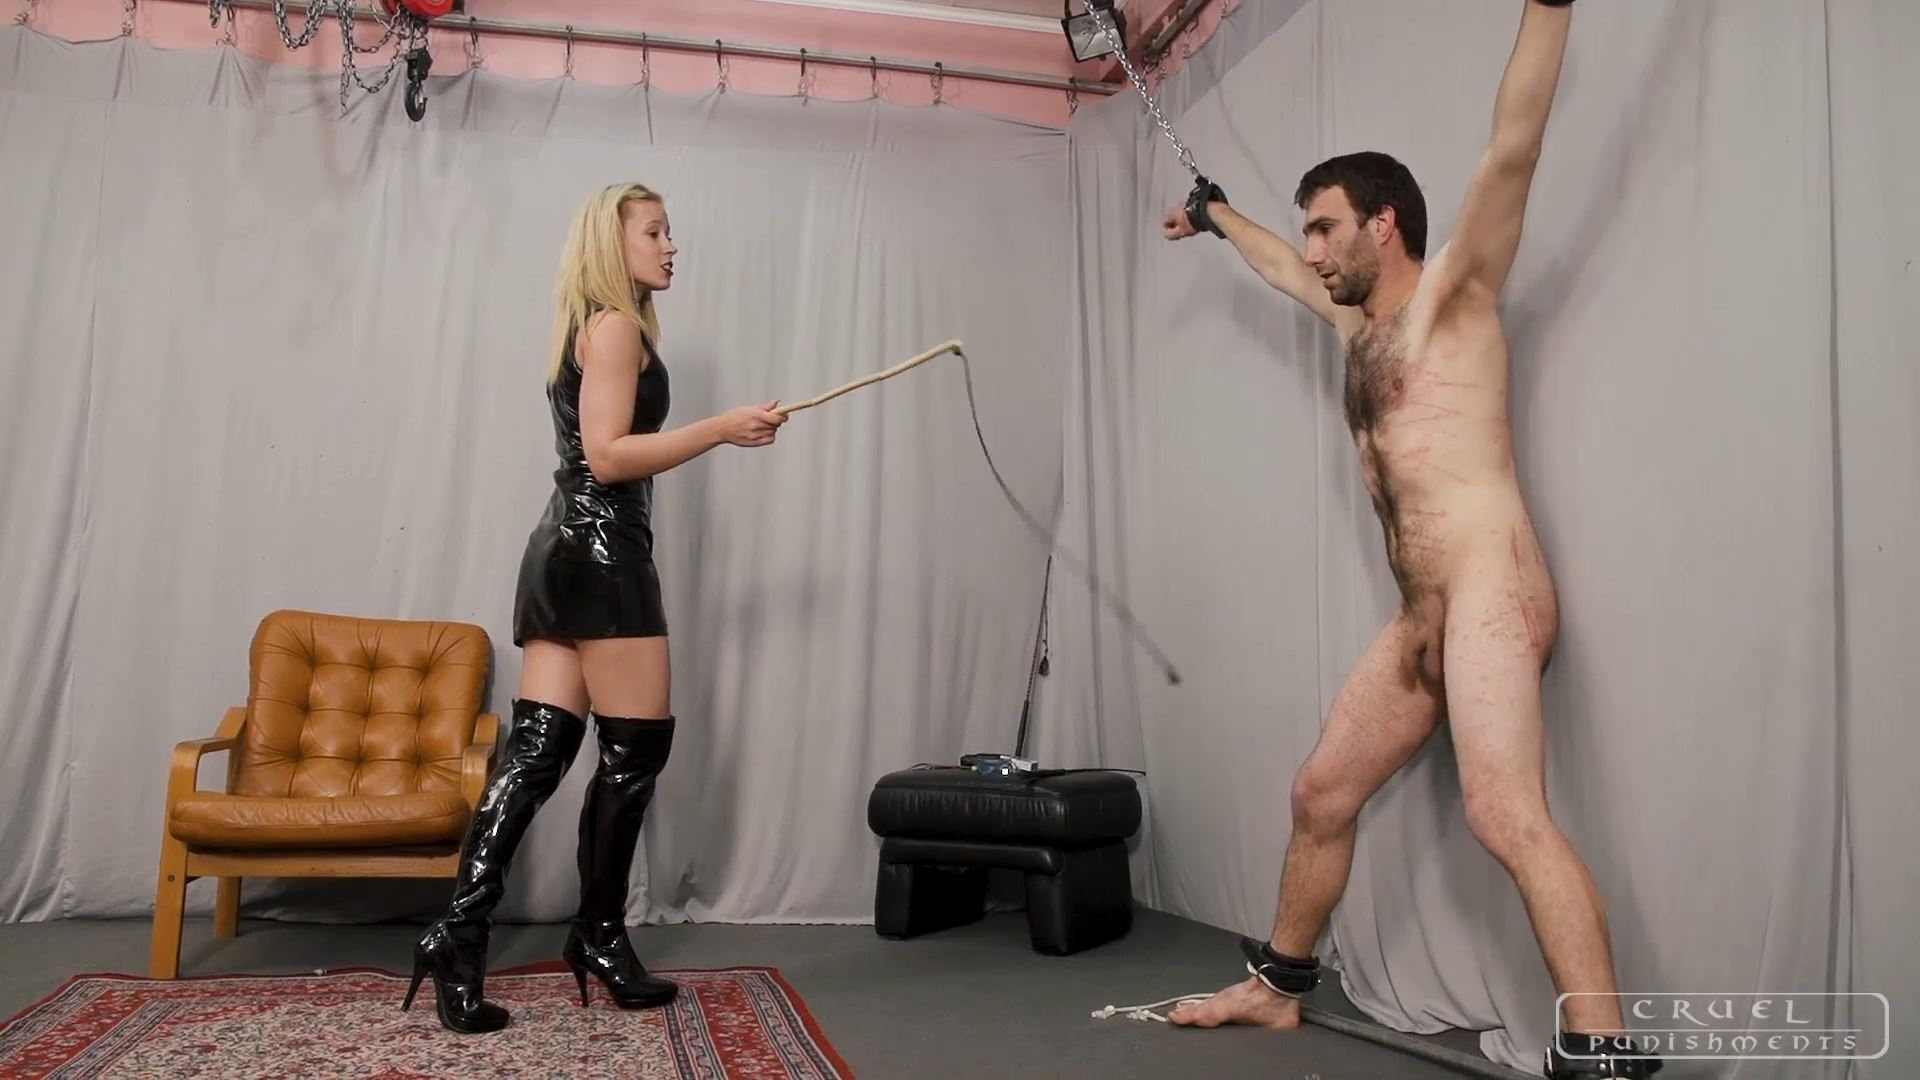 Mistress Anette In Scene: Making him scream Part 3 - CRUEL PUNISHMENTS - SEVERE FEMDOM - FULL HD/1080p/MP4